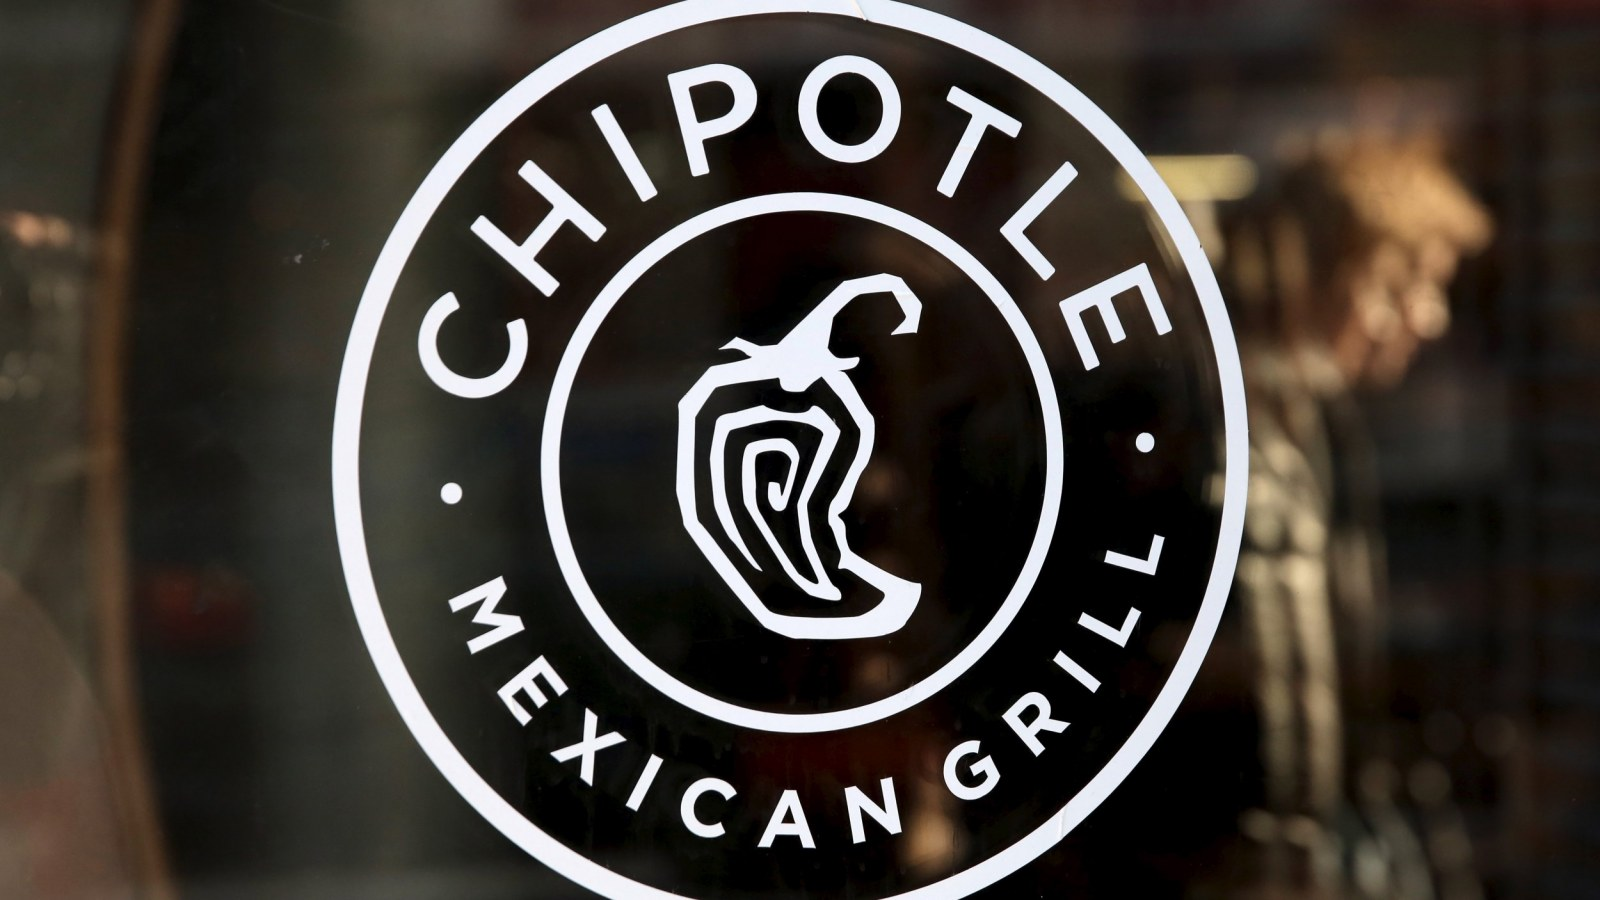 Was My Chipotle Account Hacked? Who Should I Contact? Amid